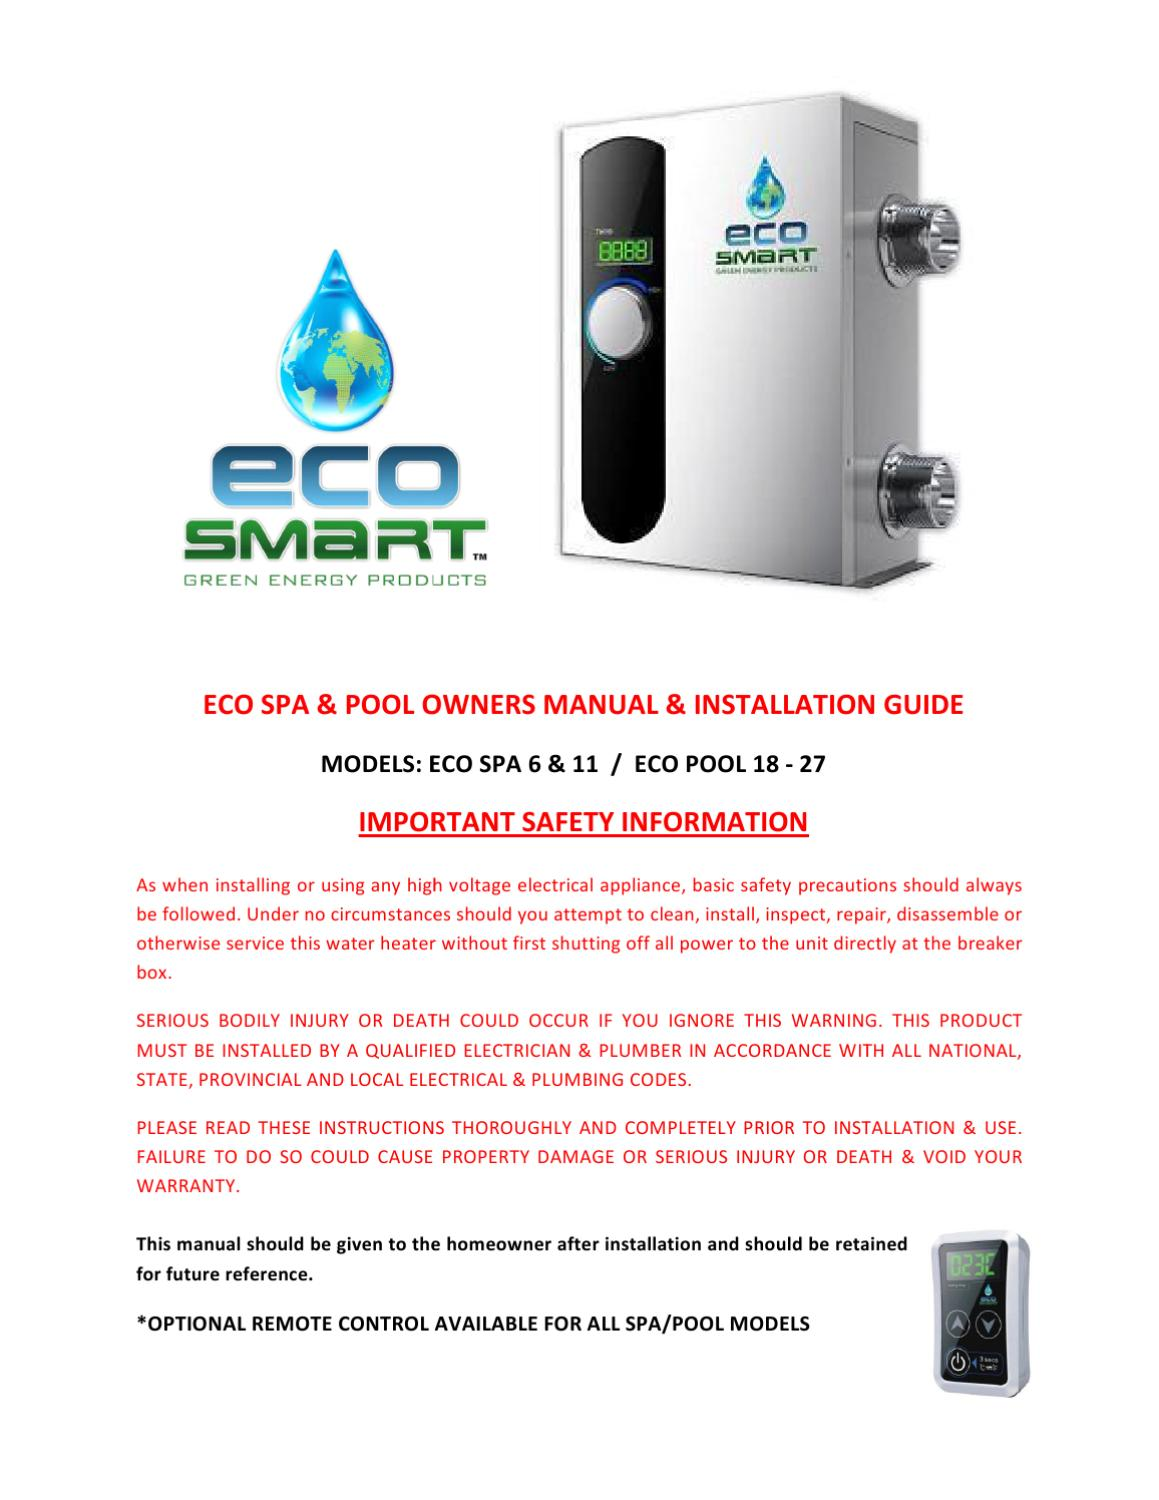 hight resolution of manual de instalacion calentadores de agua el ctricos eco spa linea ecosmart by h2o tek s a de c v issuu